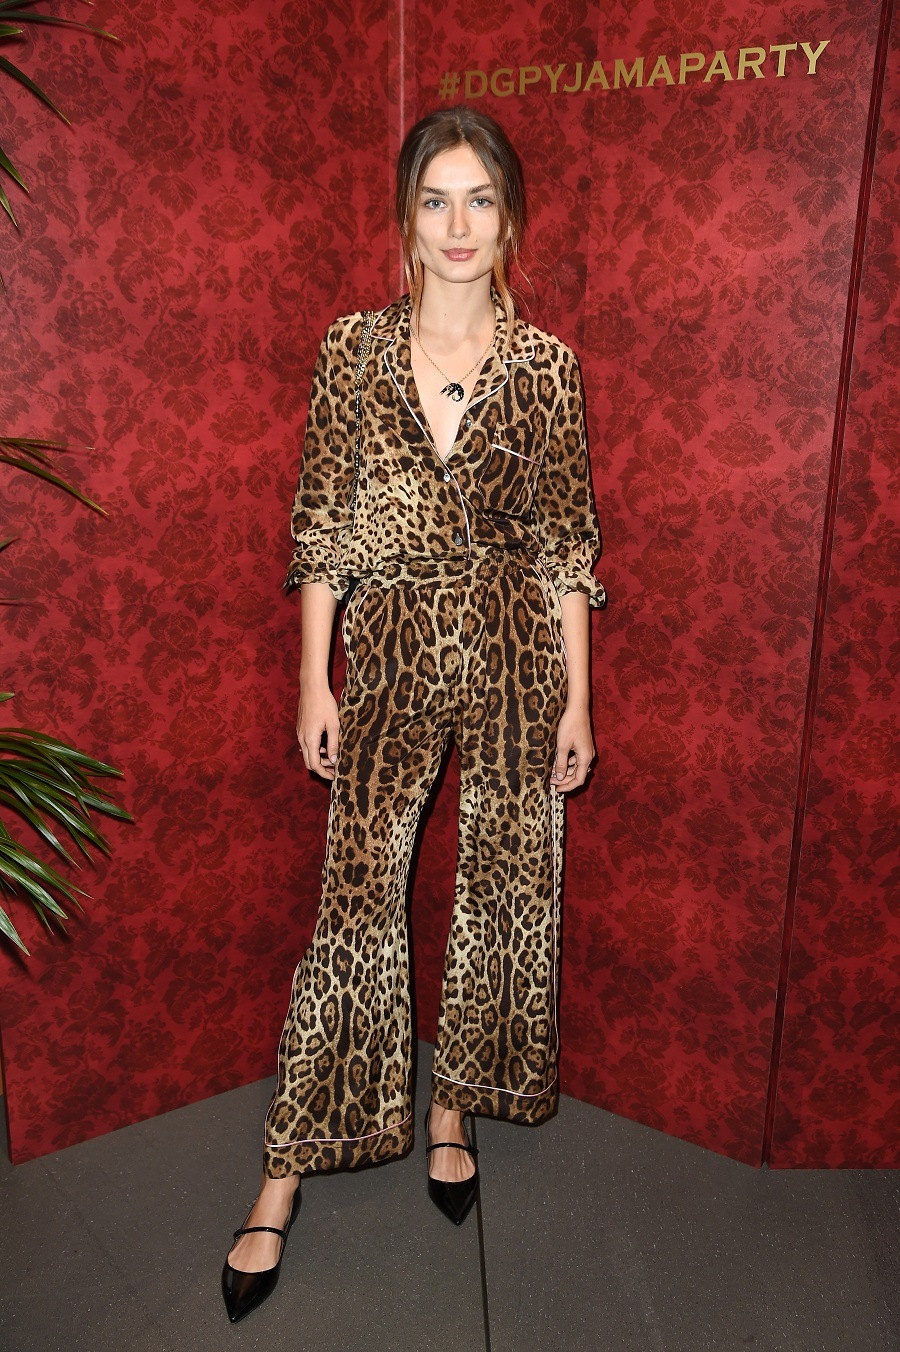 Model Andreea Diaconu attends the Dolce & Gabbana pyjama party